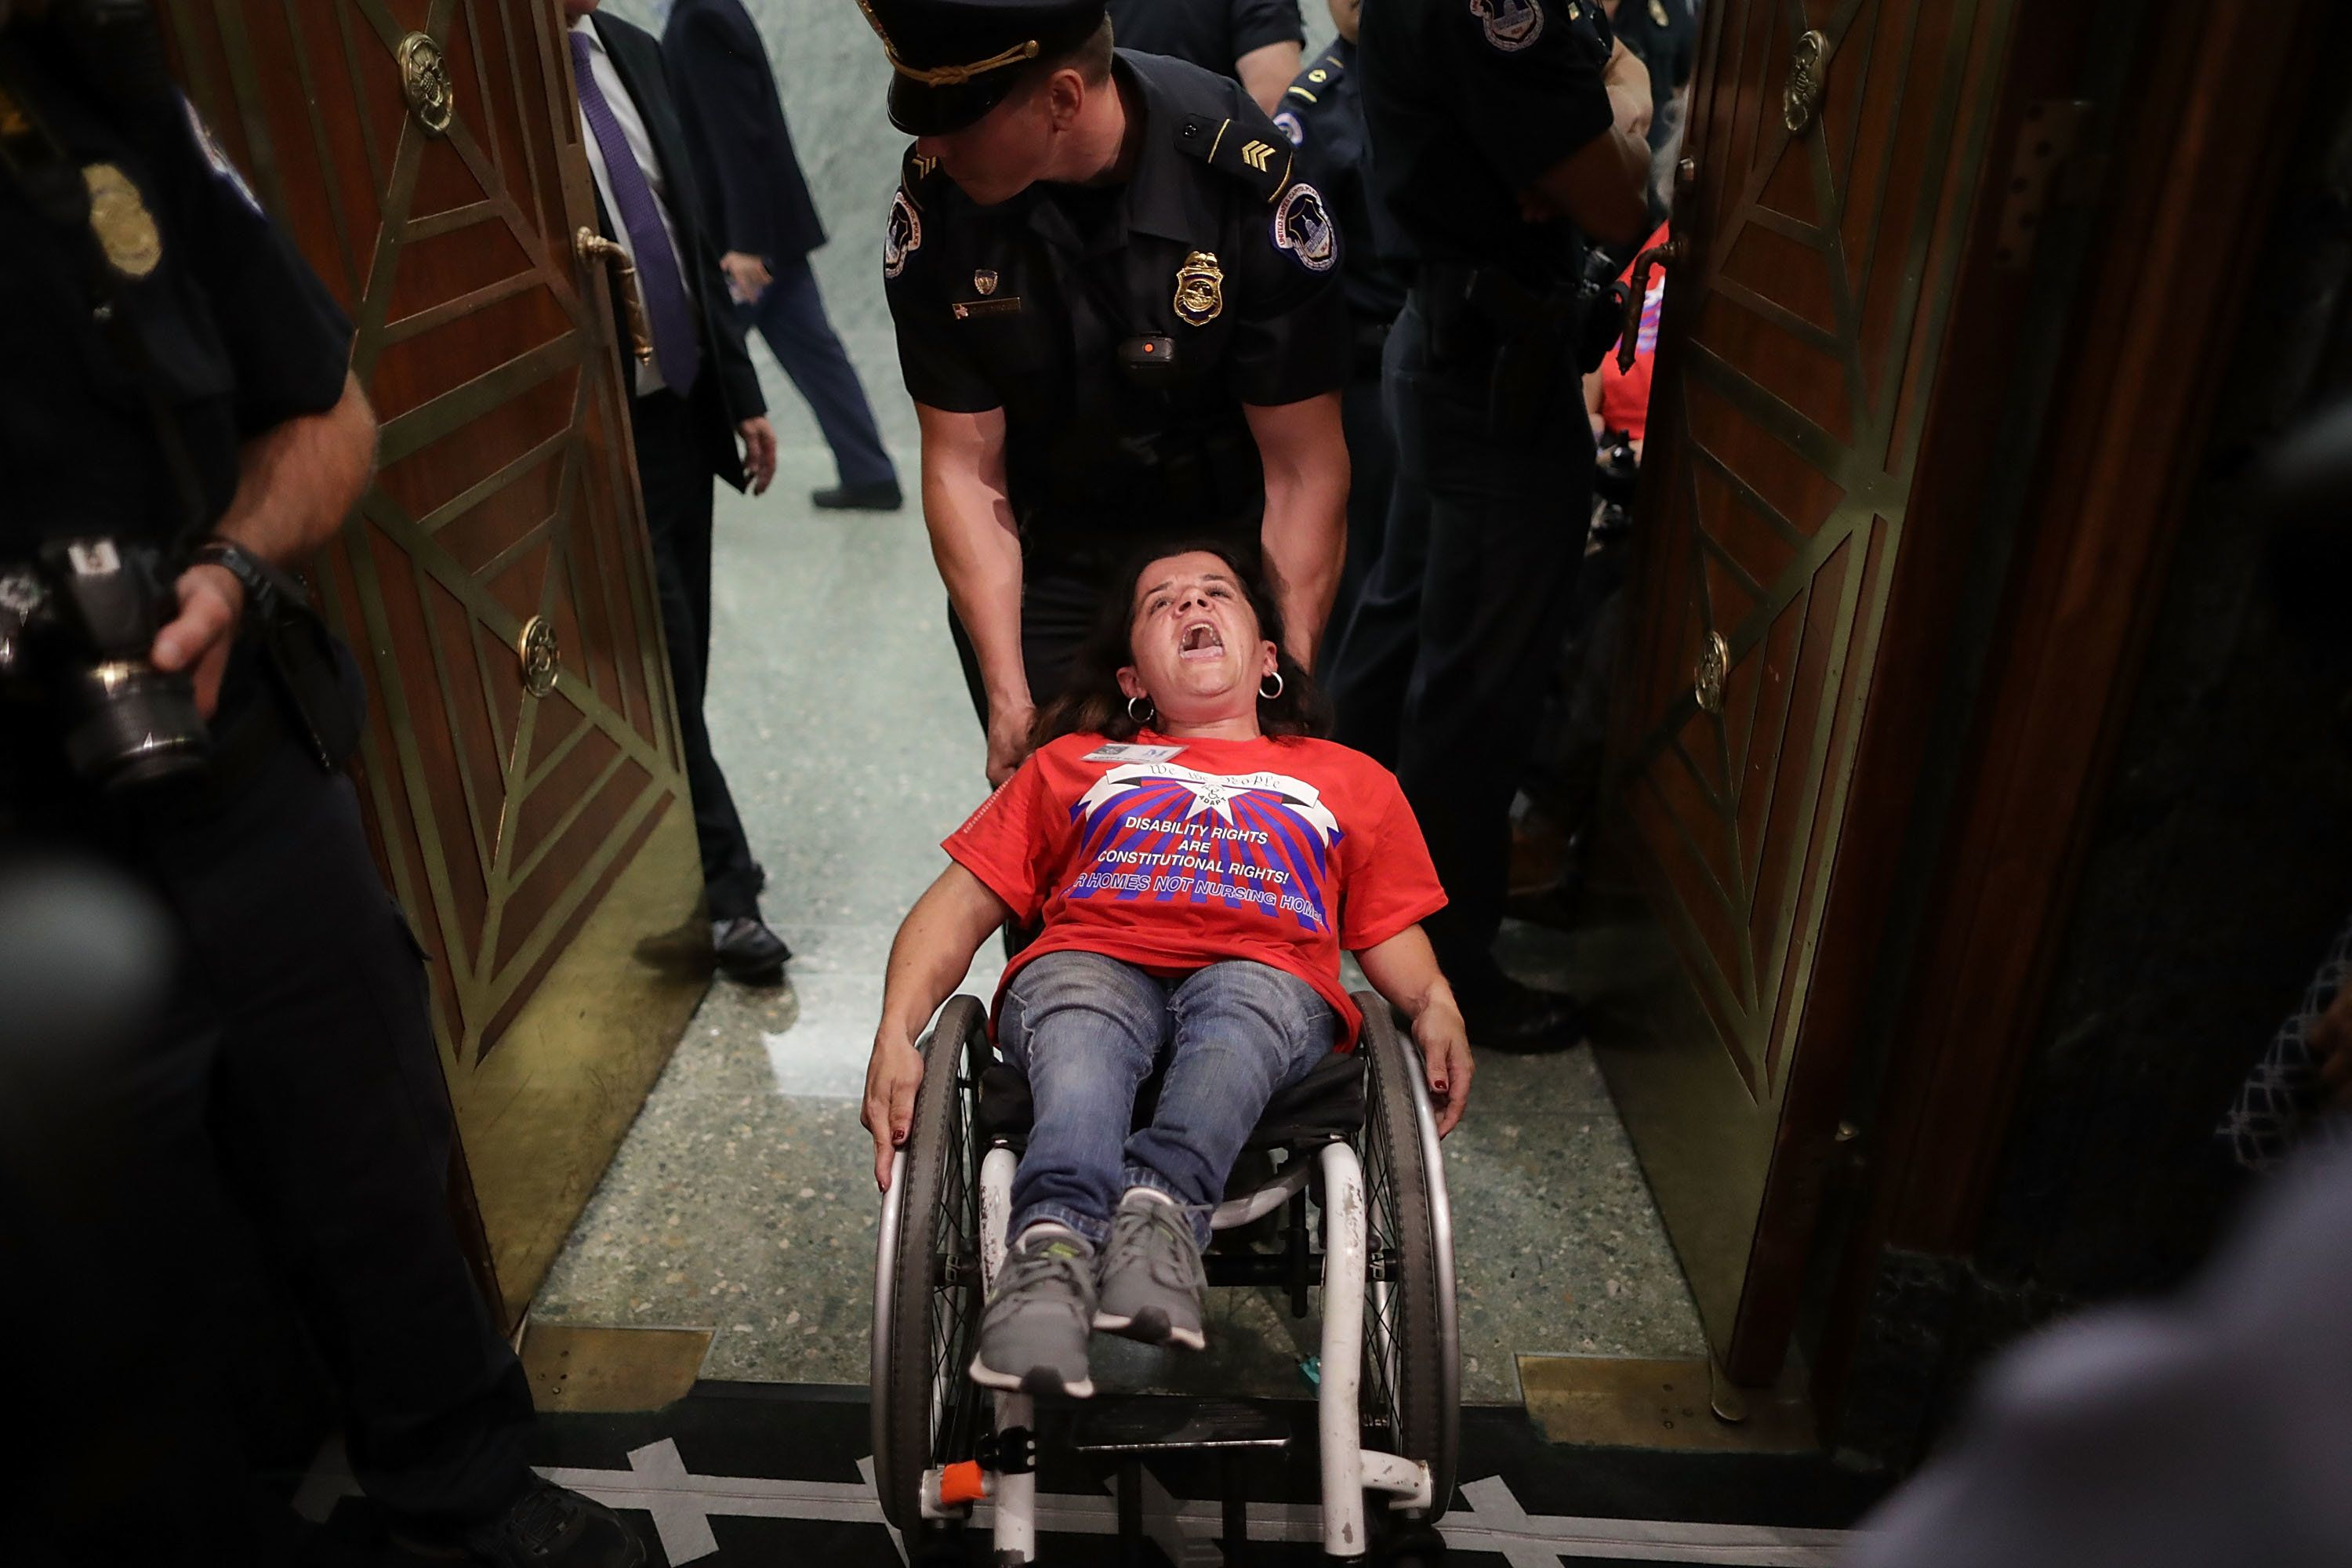 U.S. Capitol Police arrest activists from handicap advocacy organizations as protest during a Senate Finance Commit